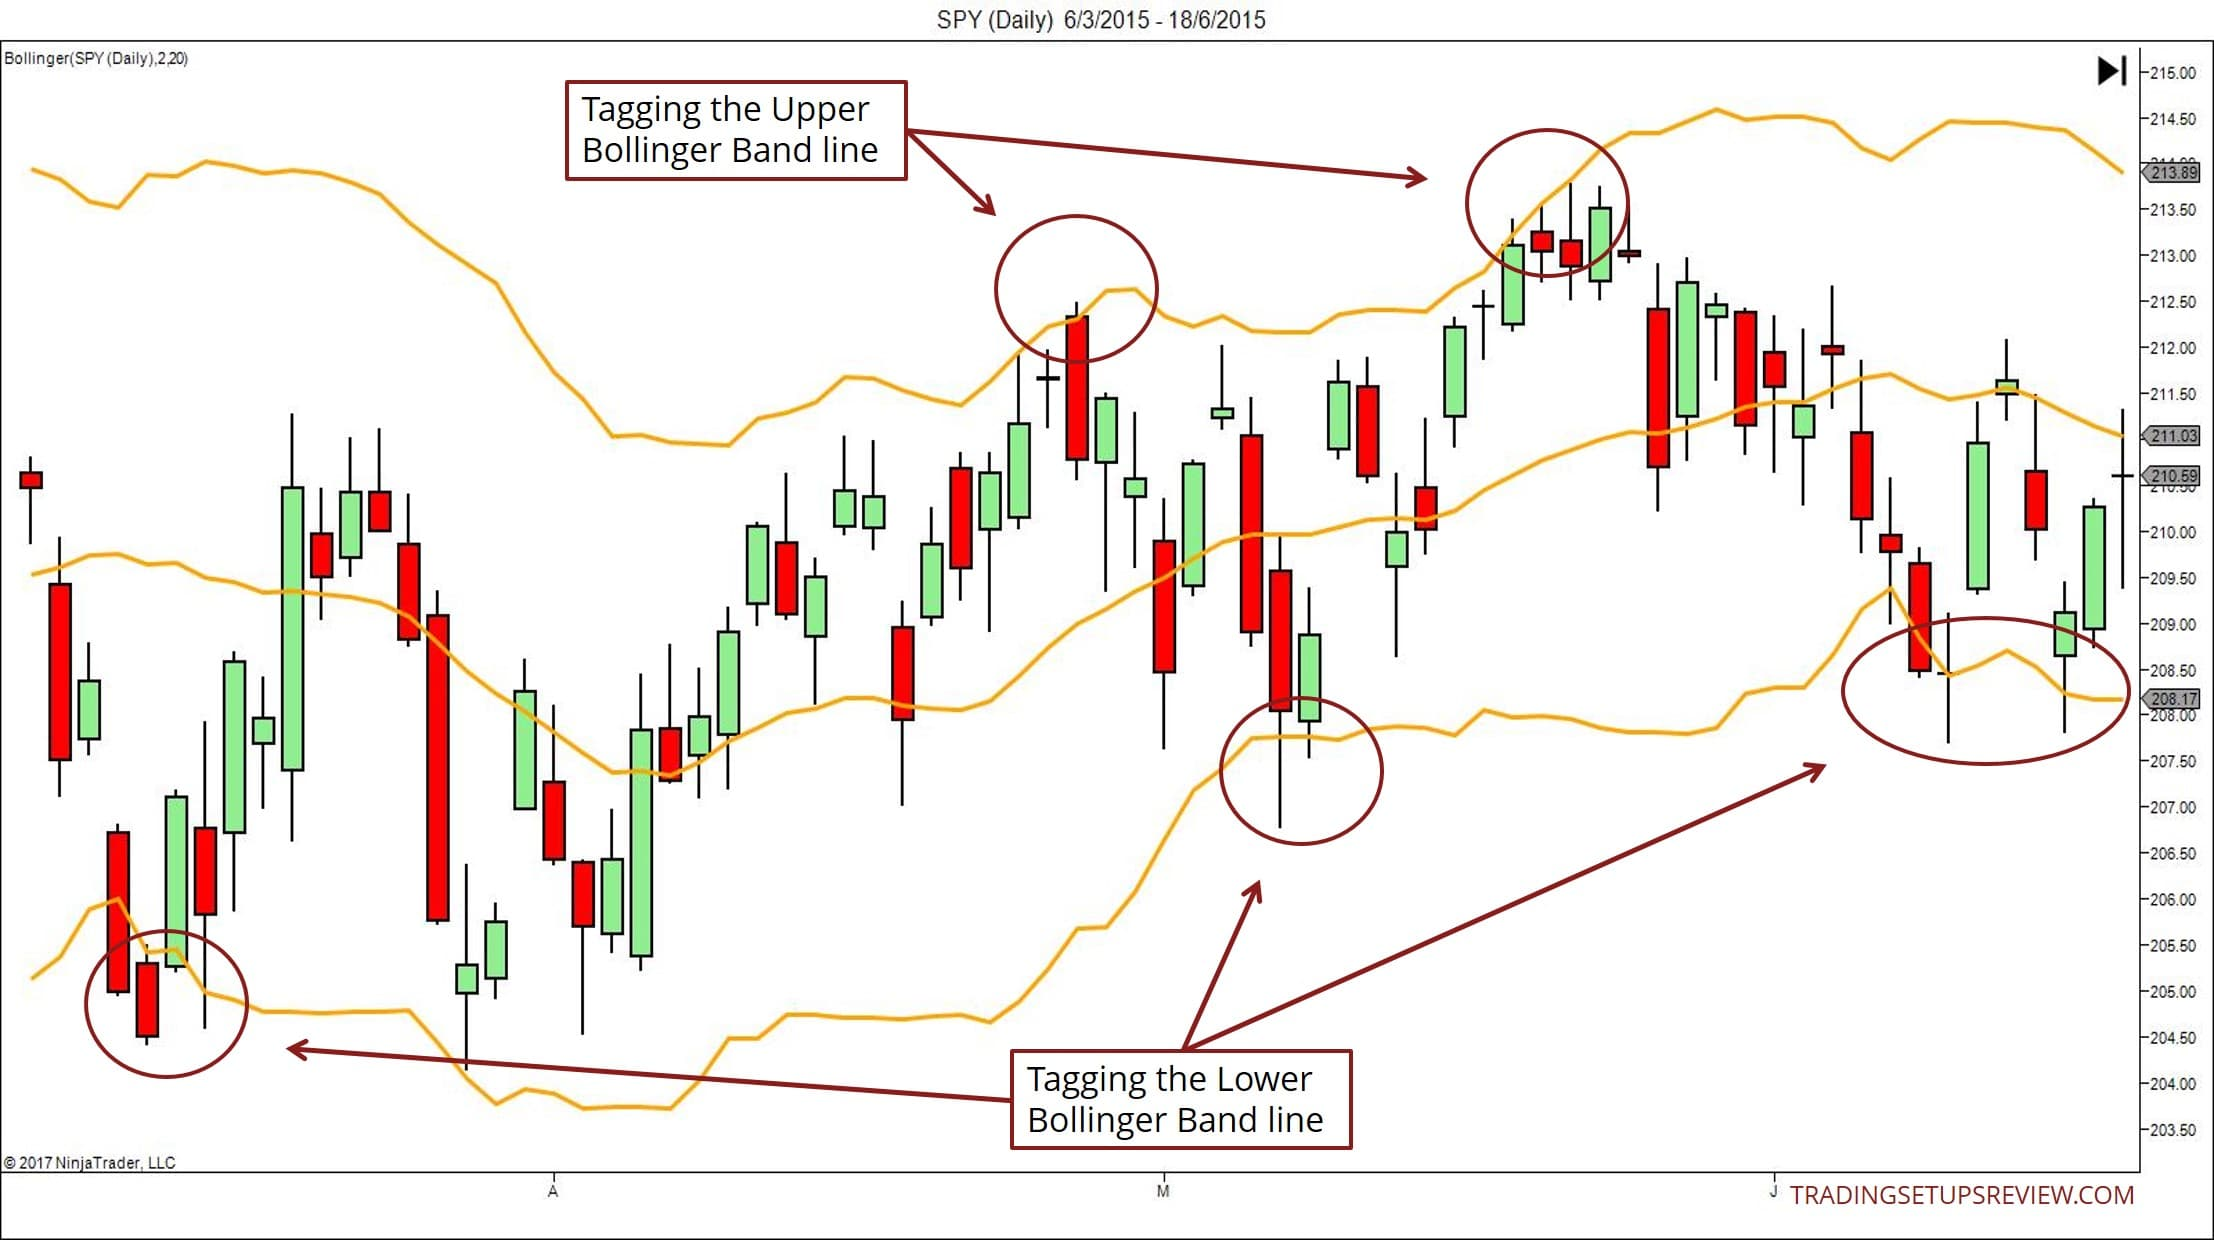 Price Tagging Bollinger Bands In A Sideways Market